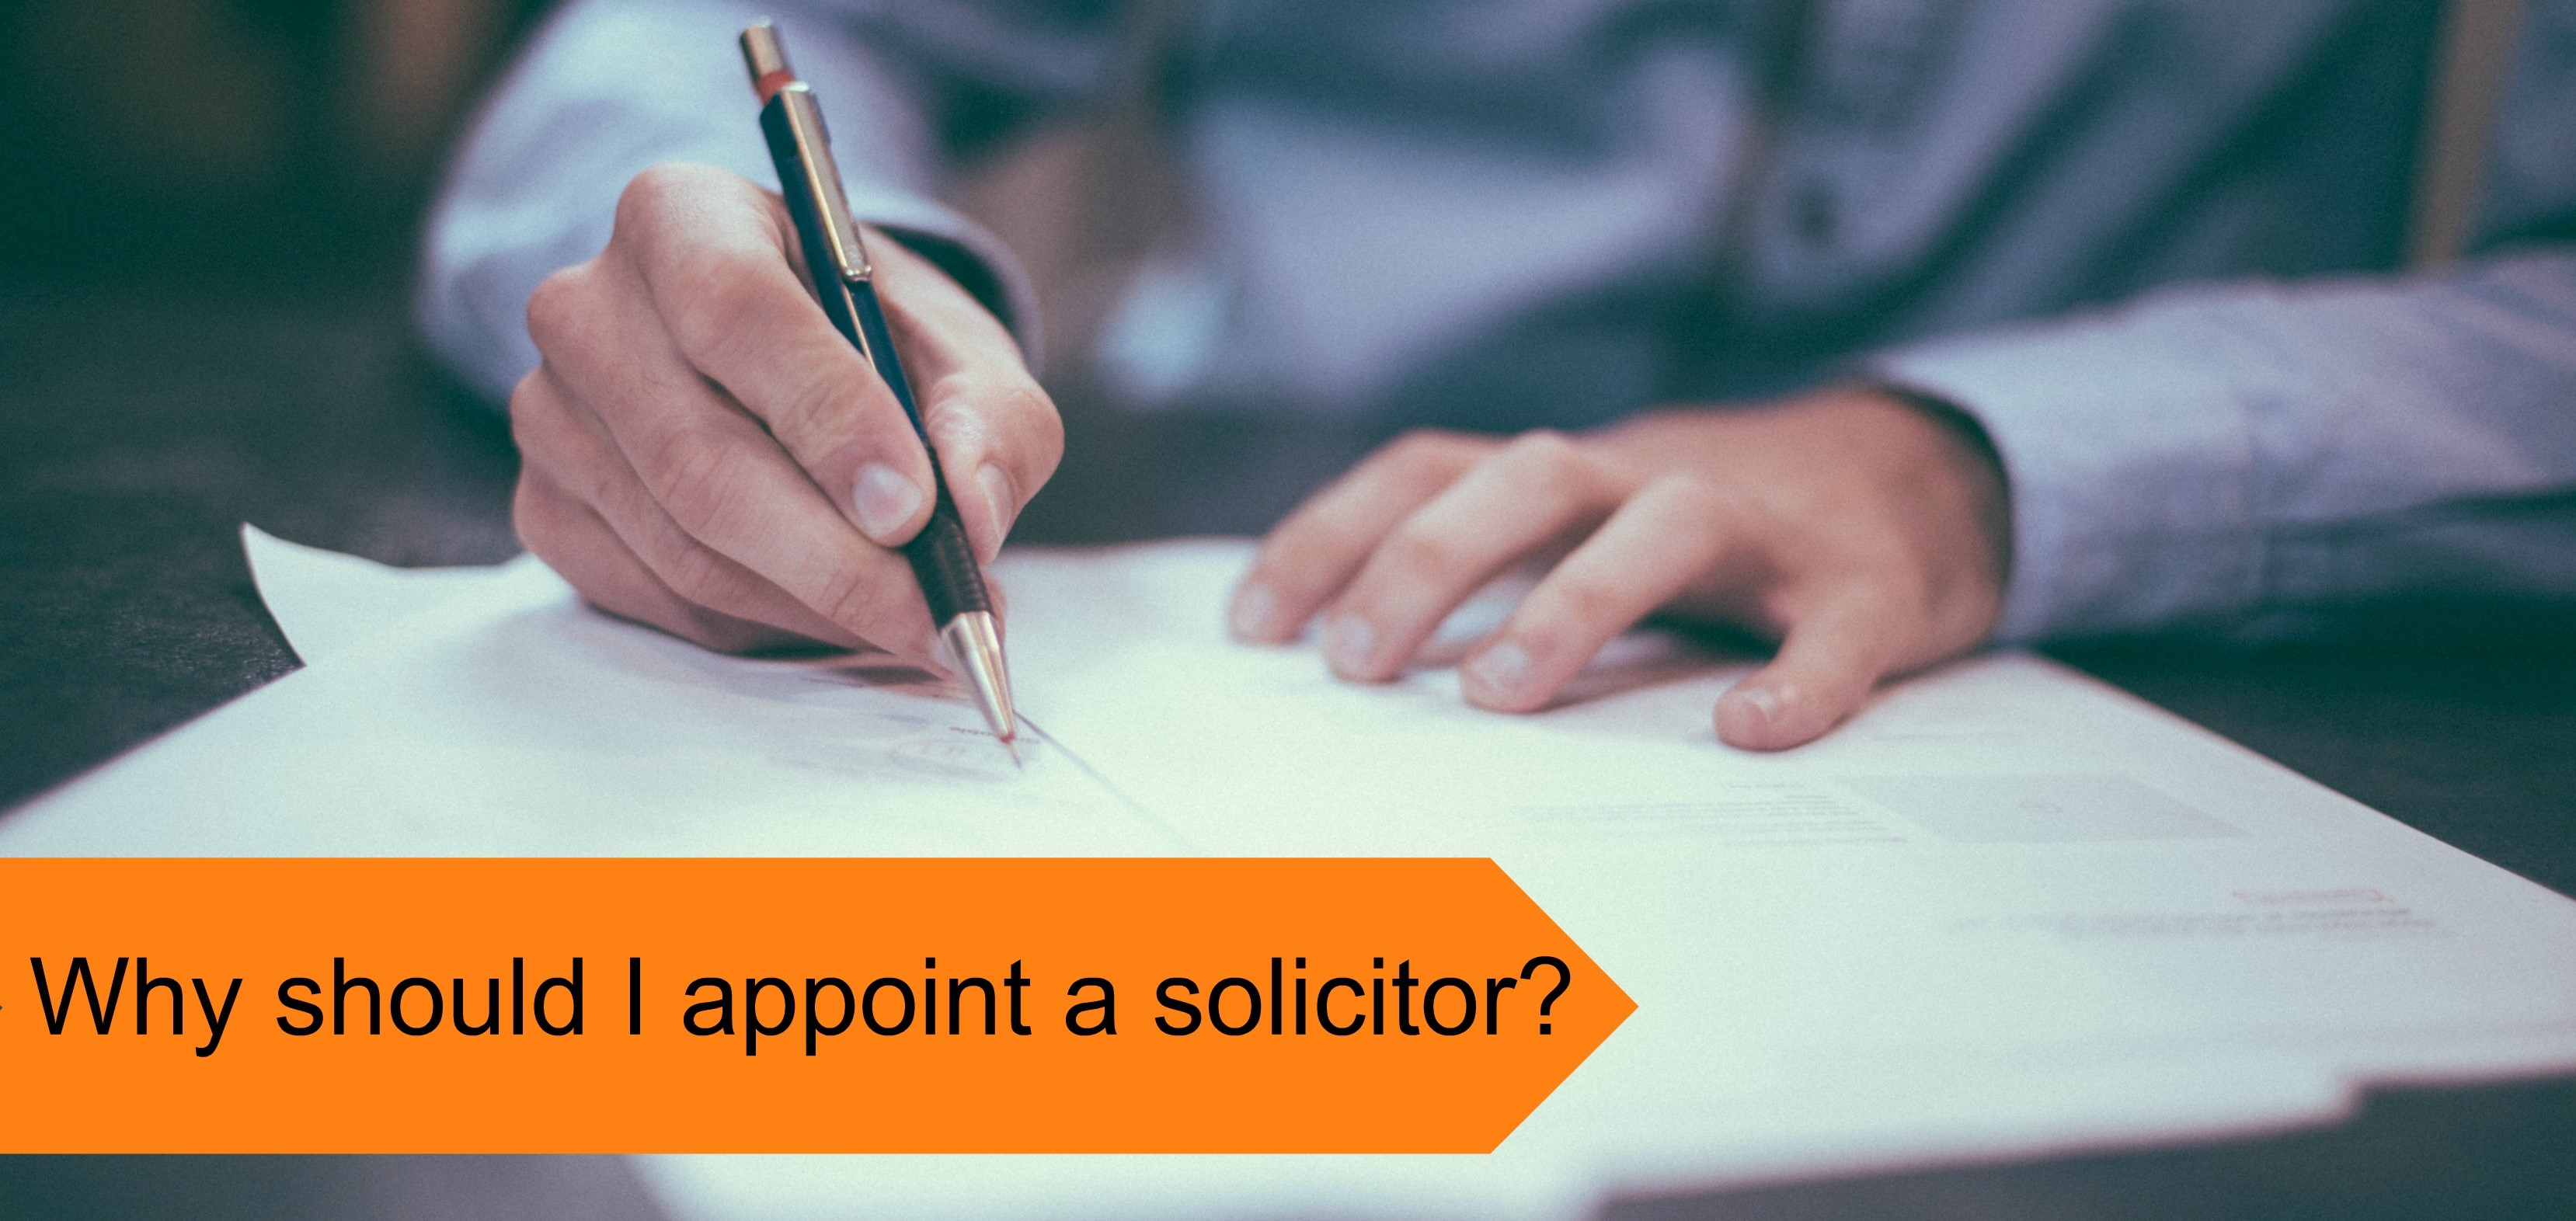 Why appoint a solicitor?